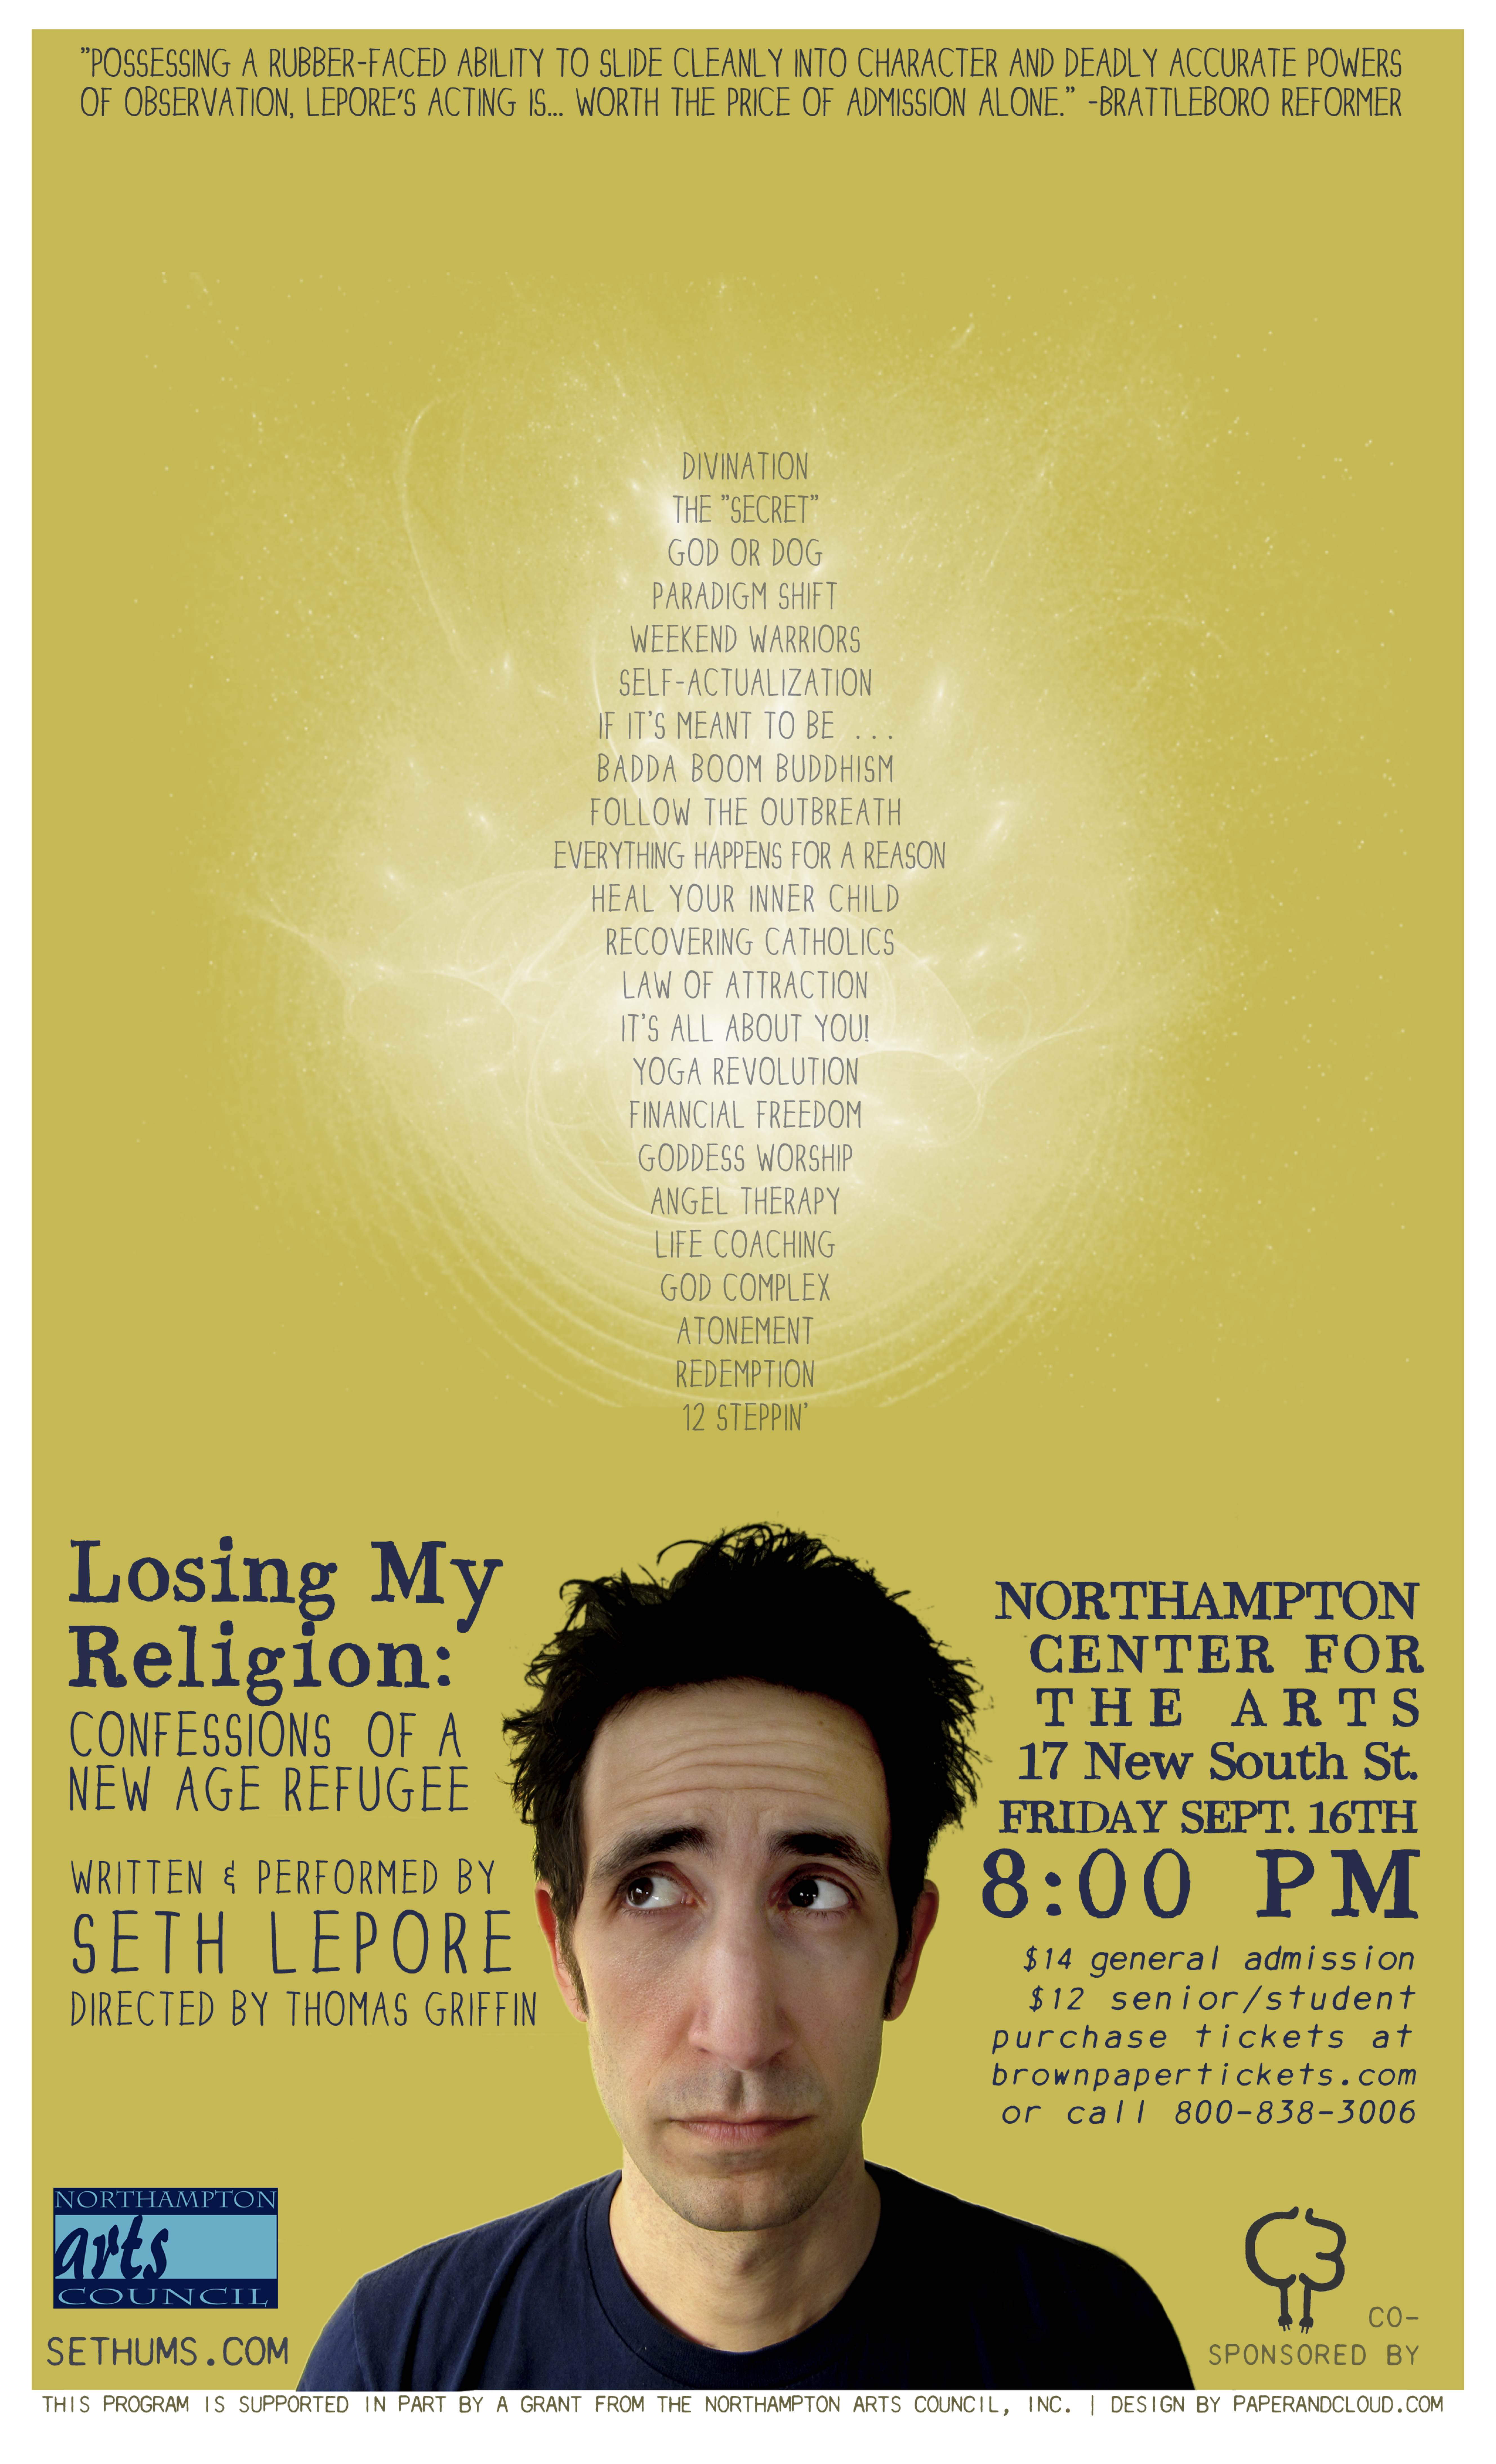 Losing My Religion at Noho Center for the Arts